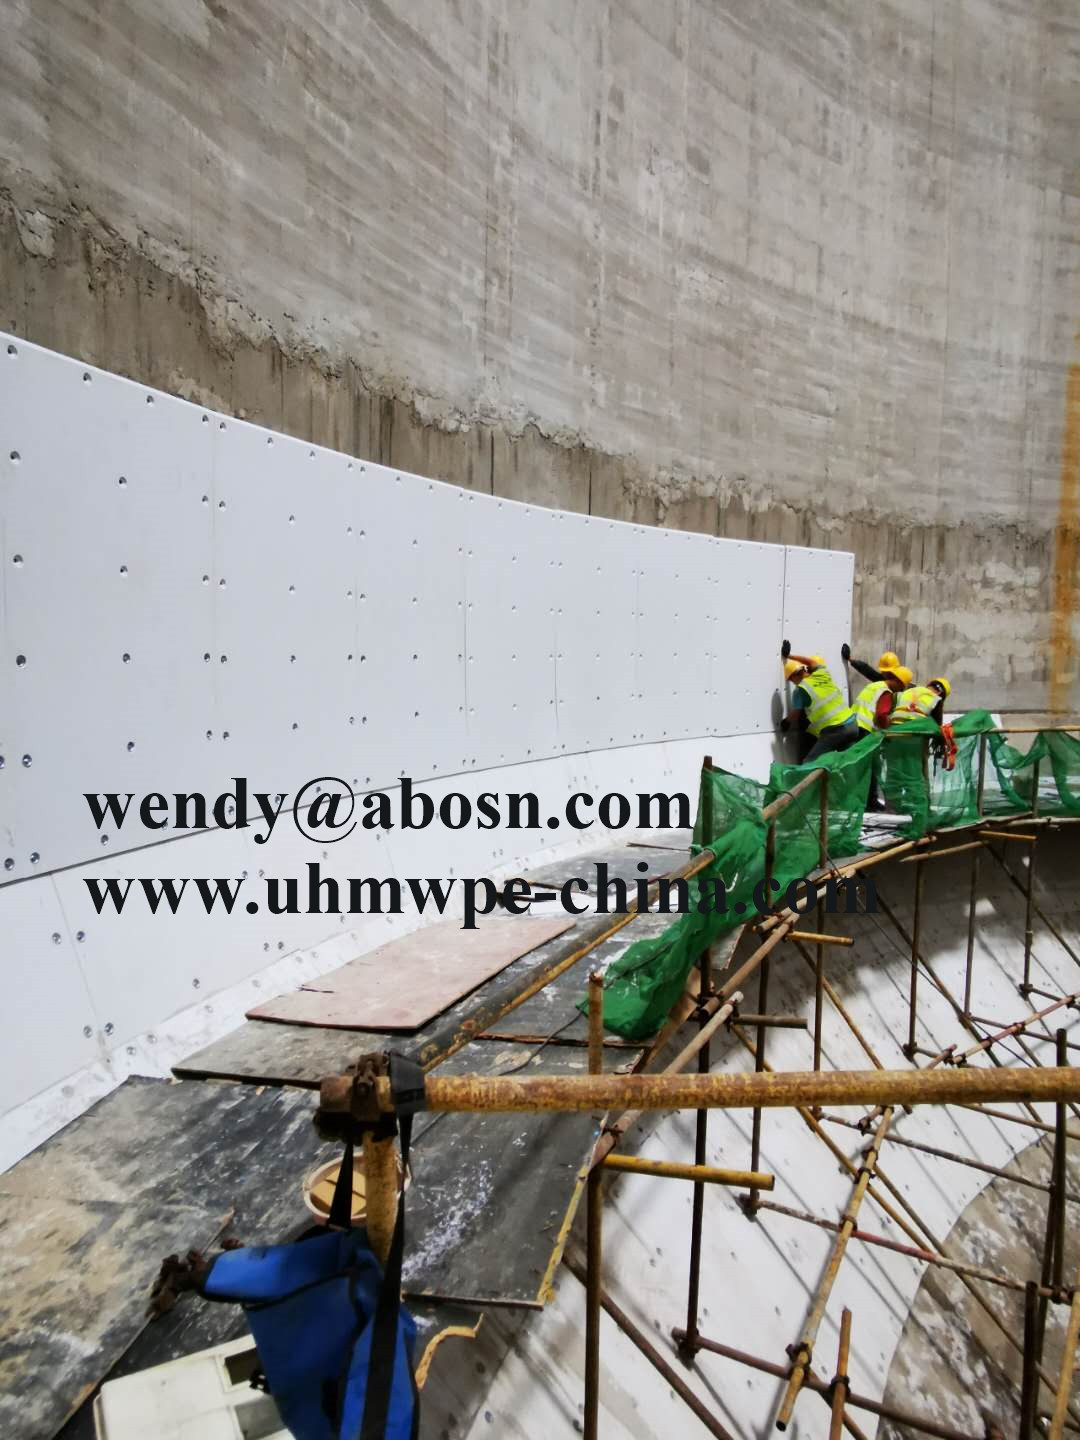 100 Sets ABOSN UHMWPE Bunker Lining Completed